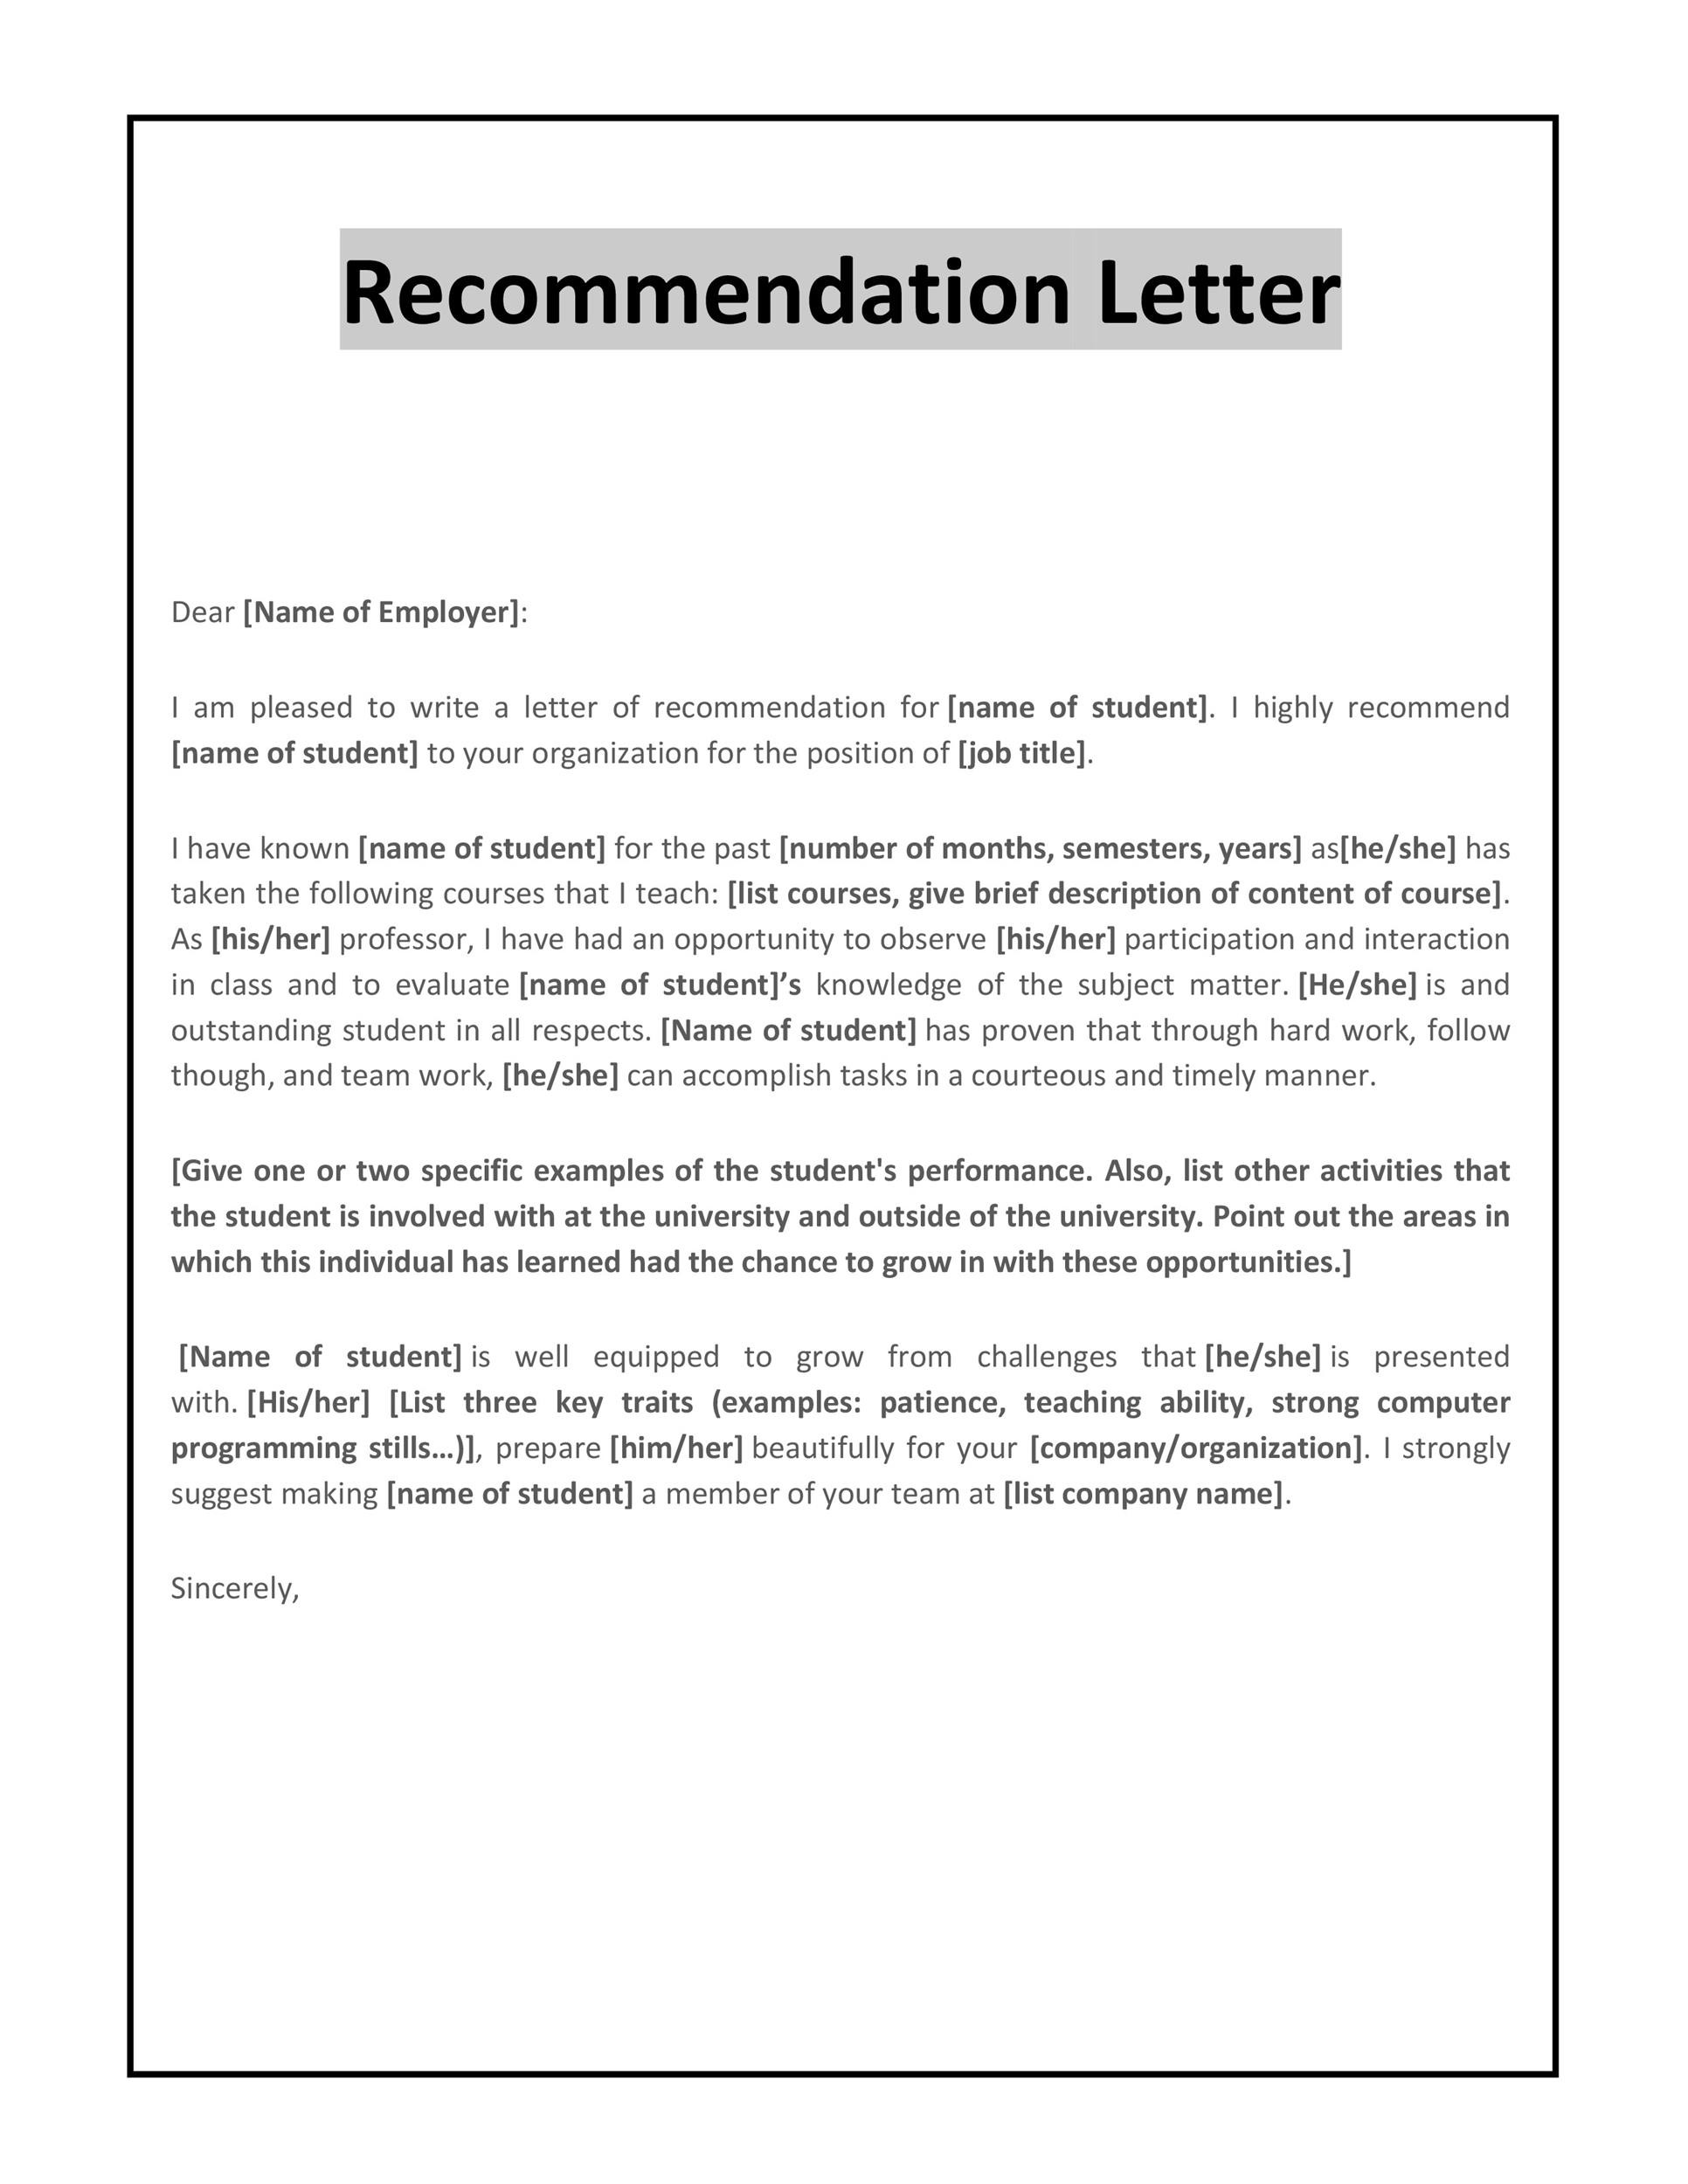 Incroyable Printable Letter Of Recommendation 29